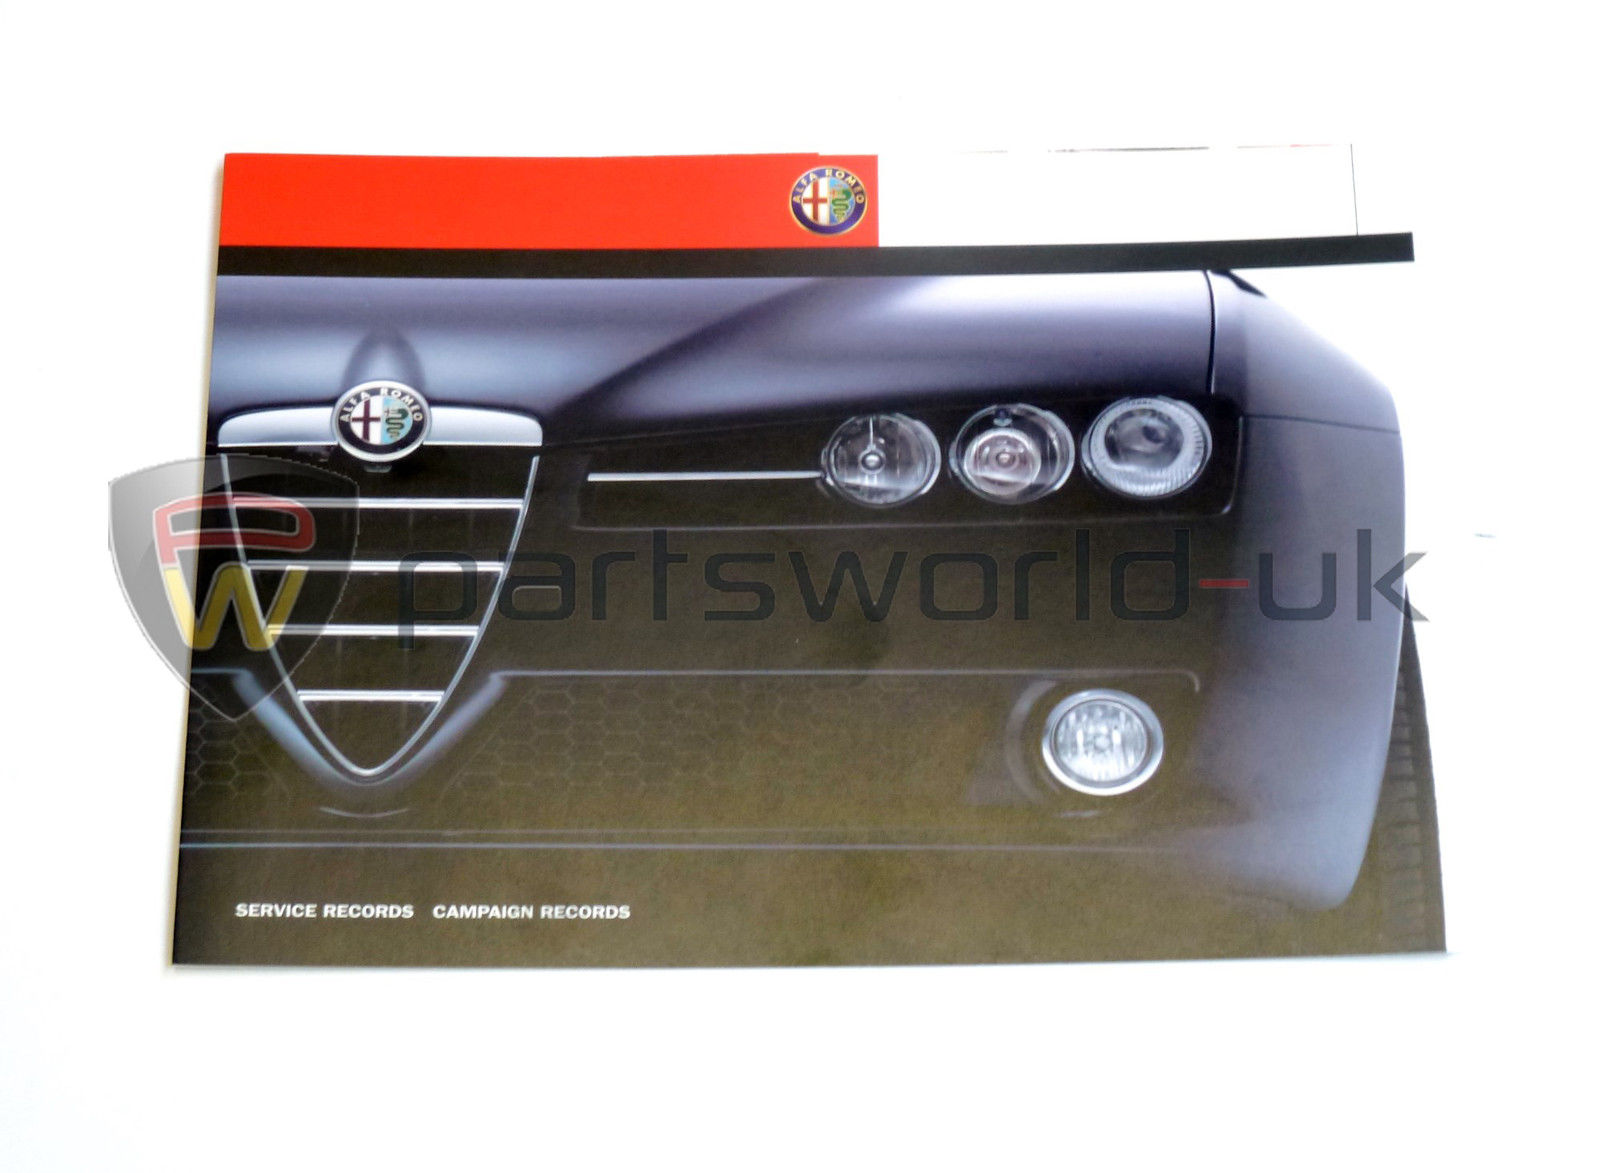 alfa romeo aftercare service history card 145 155 156 147. Black Bedroom Furniture Sets. Home Design Ideas